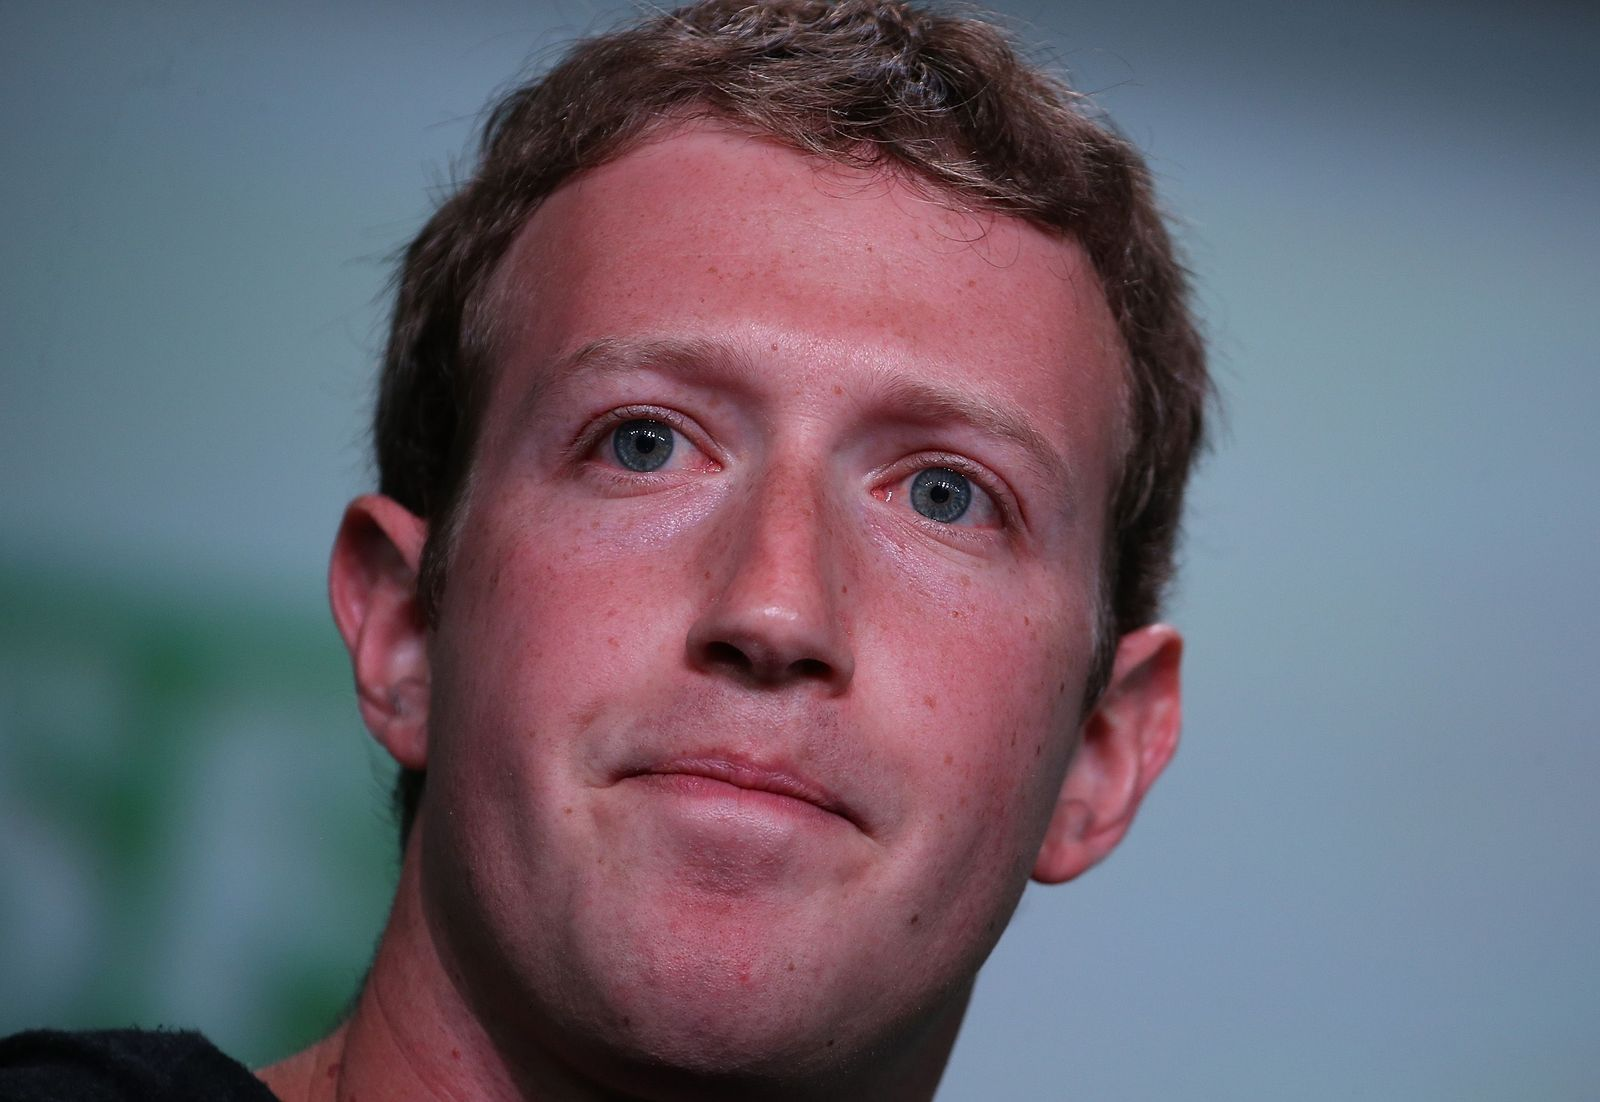 Zuckerberg Facebook TechCrunch